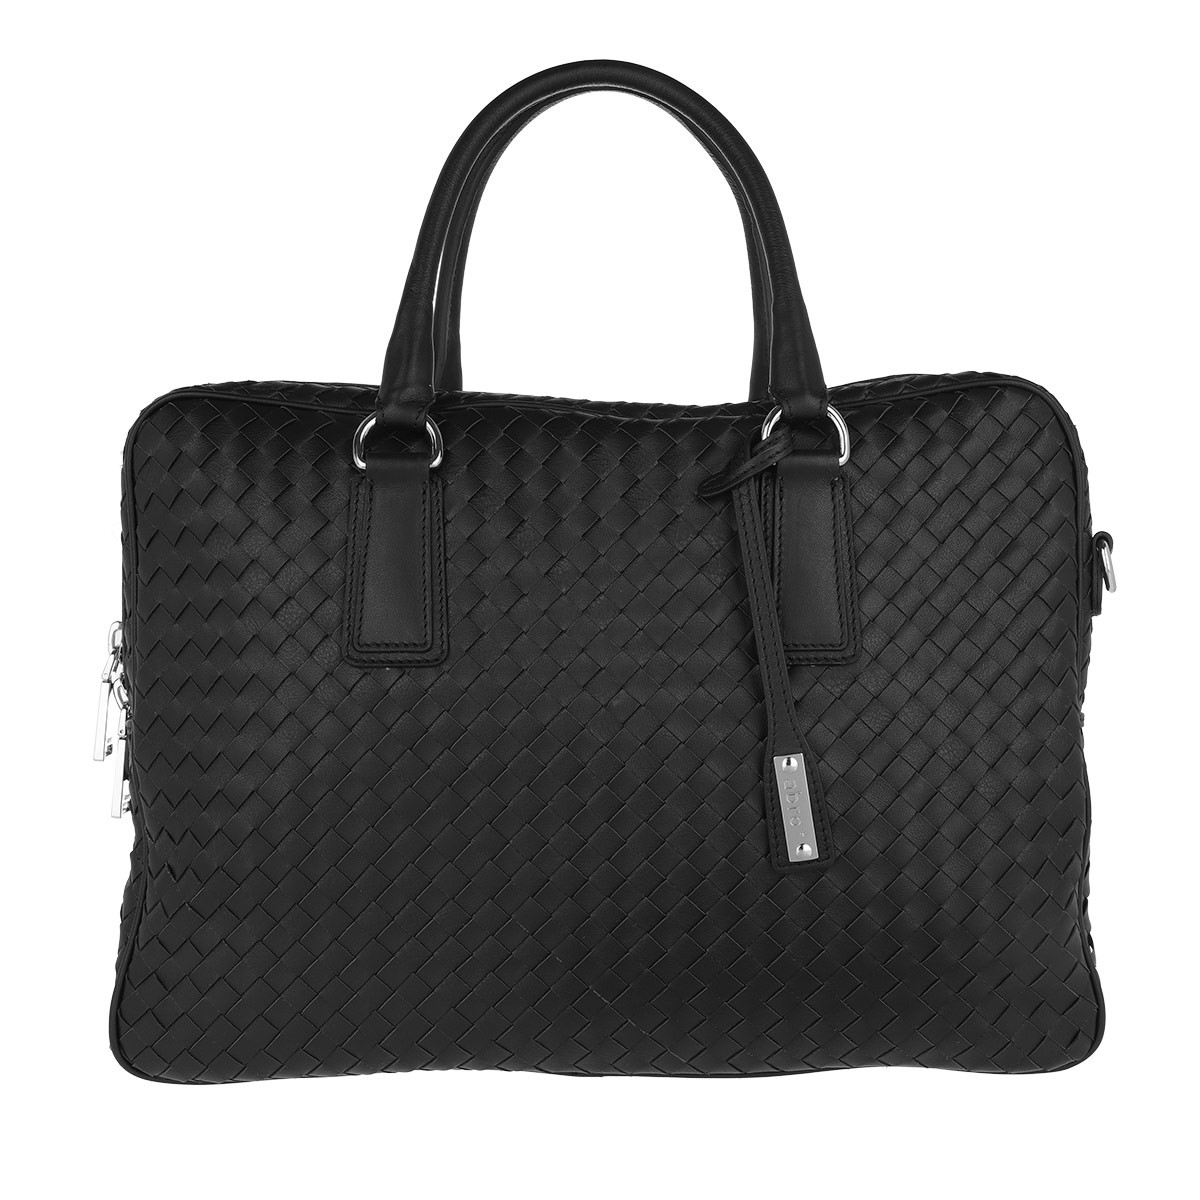 Abro Aktentasche - Nappa Lotus Handle Bag Black/Nickel - in schwarz - für Damen